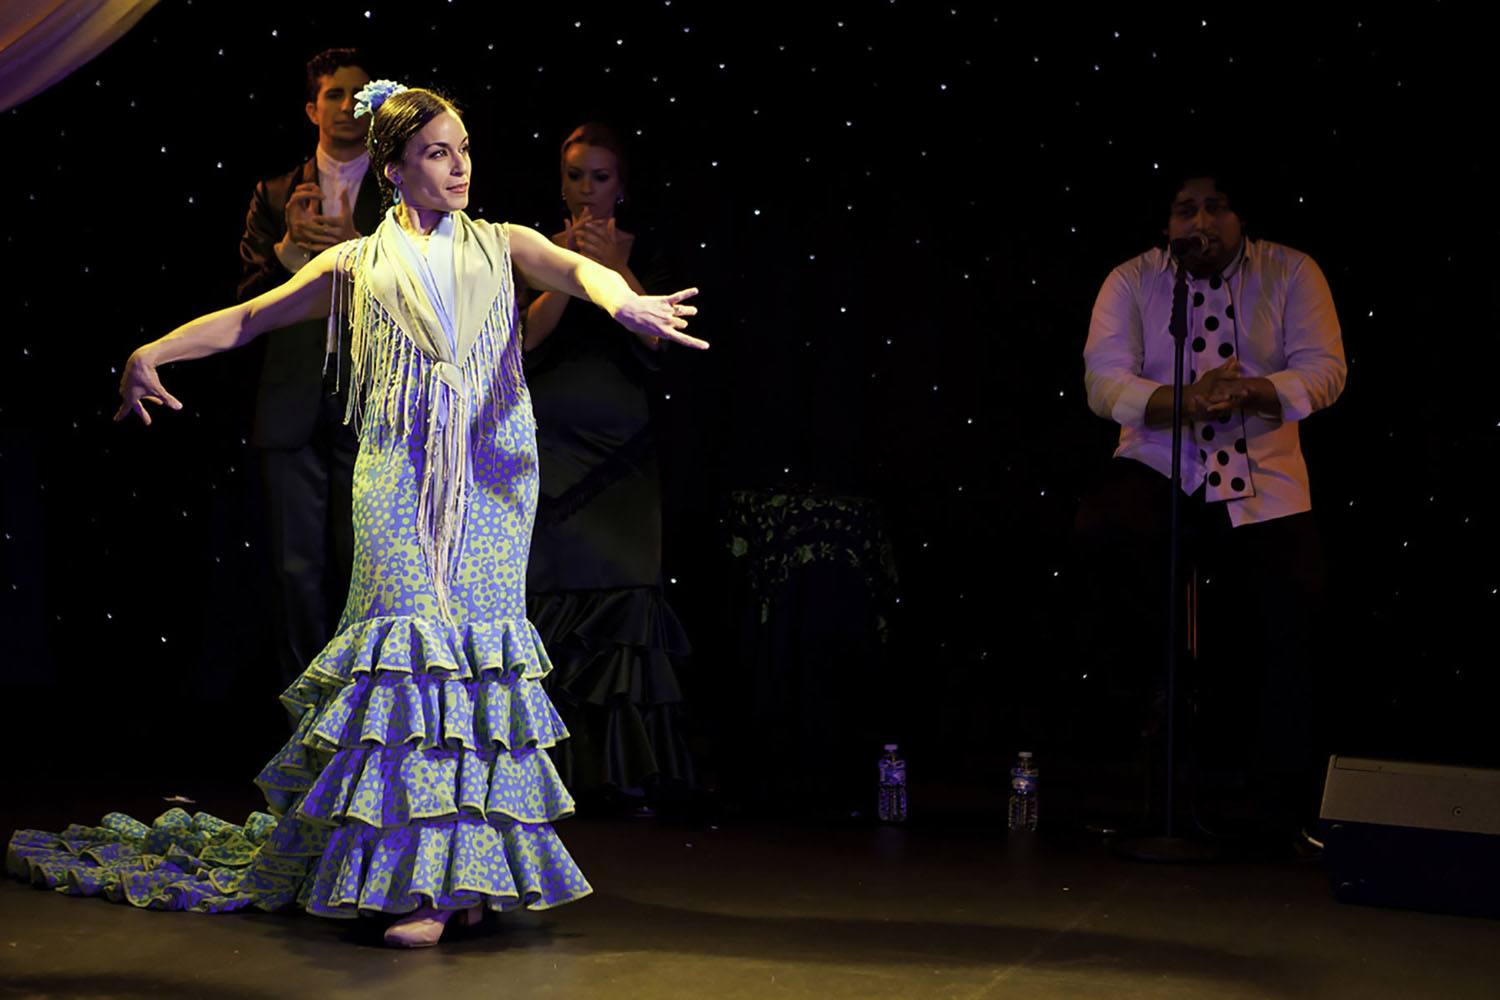 When in Spain, lose yourself in the stomping heels, sensual moves, and masterful guitar of a Spanish Flamenco performance.